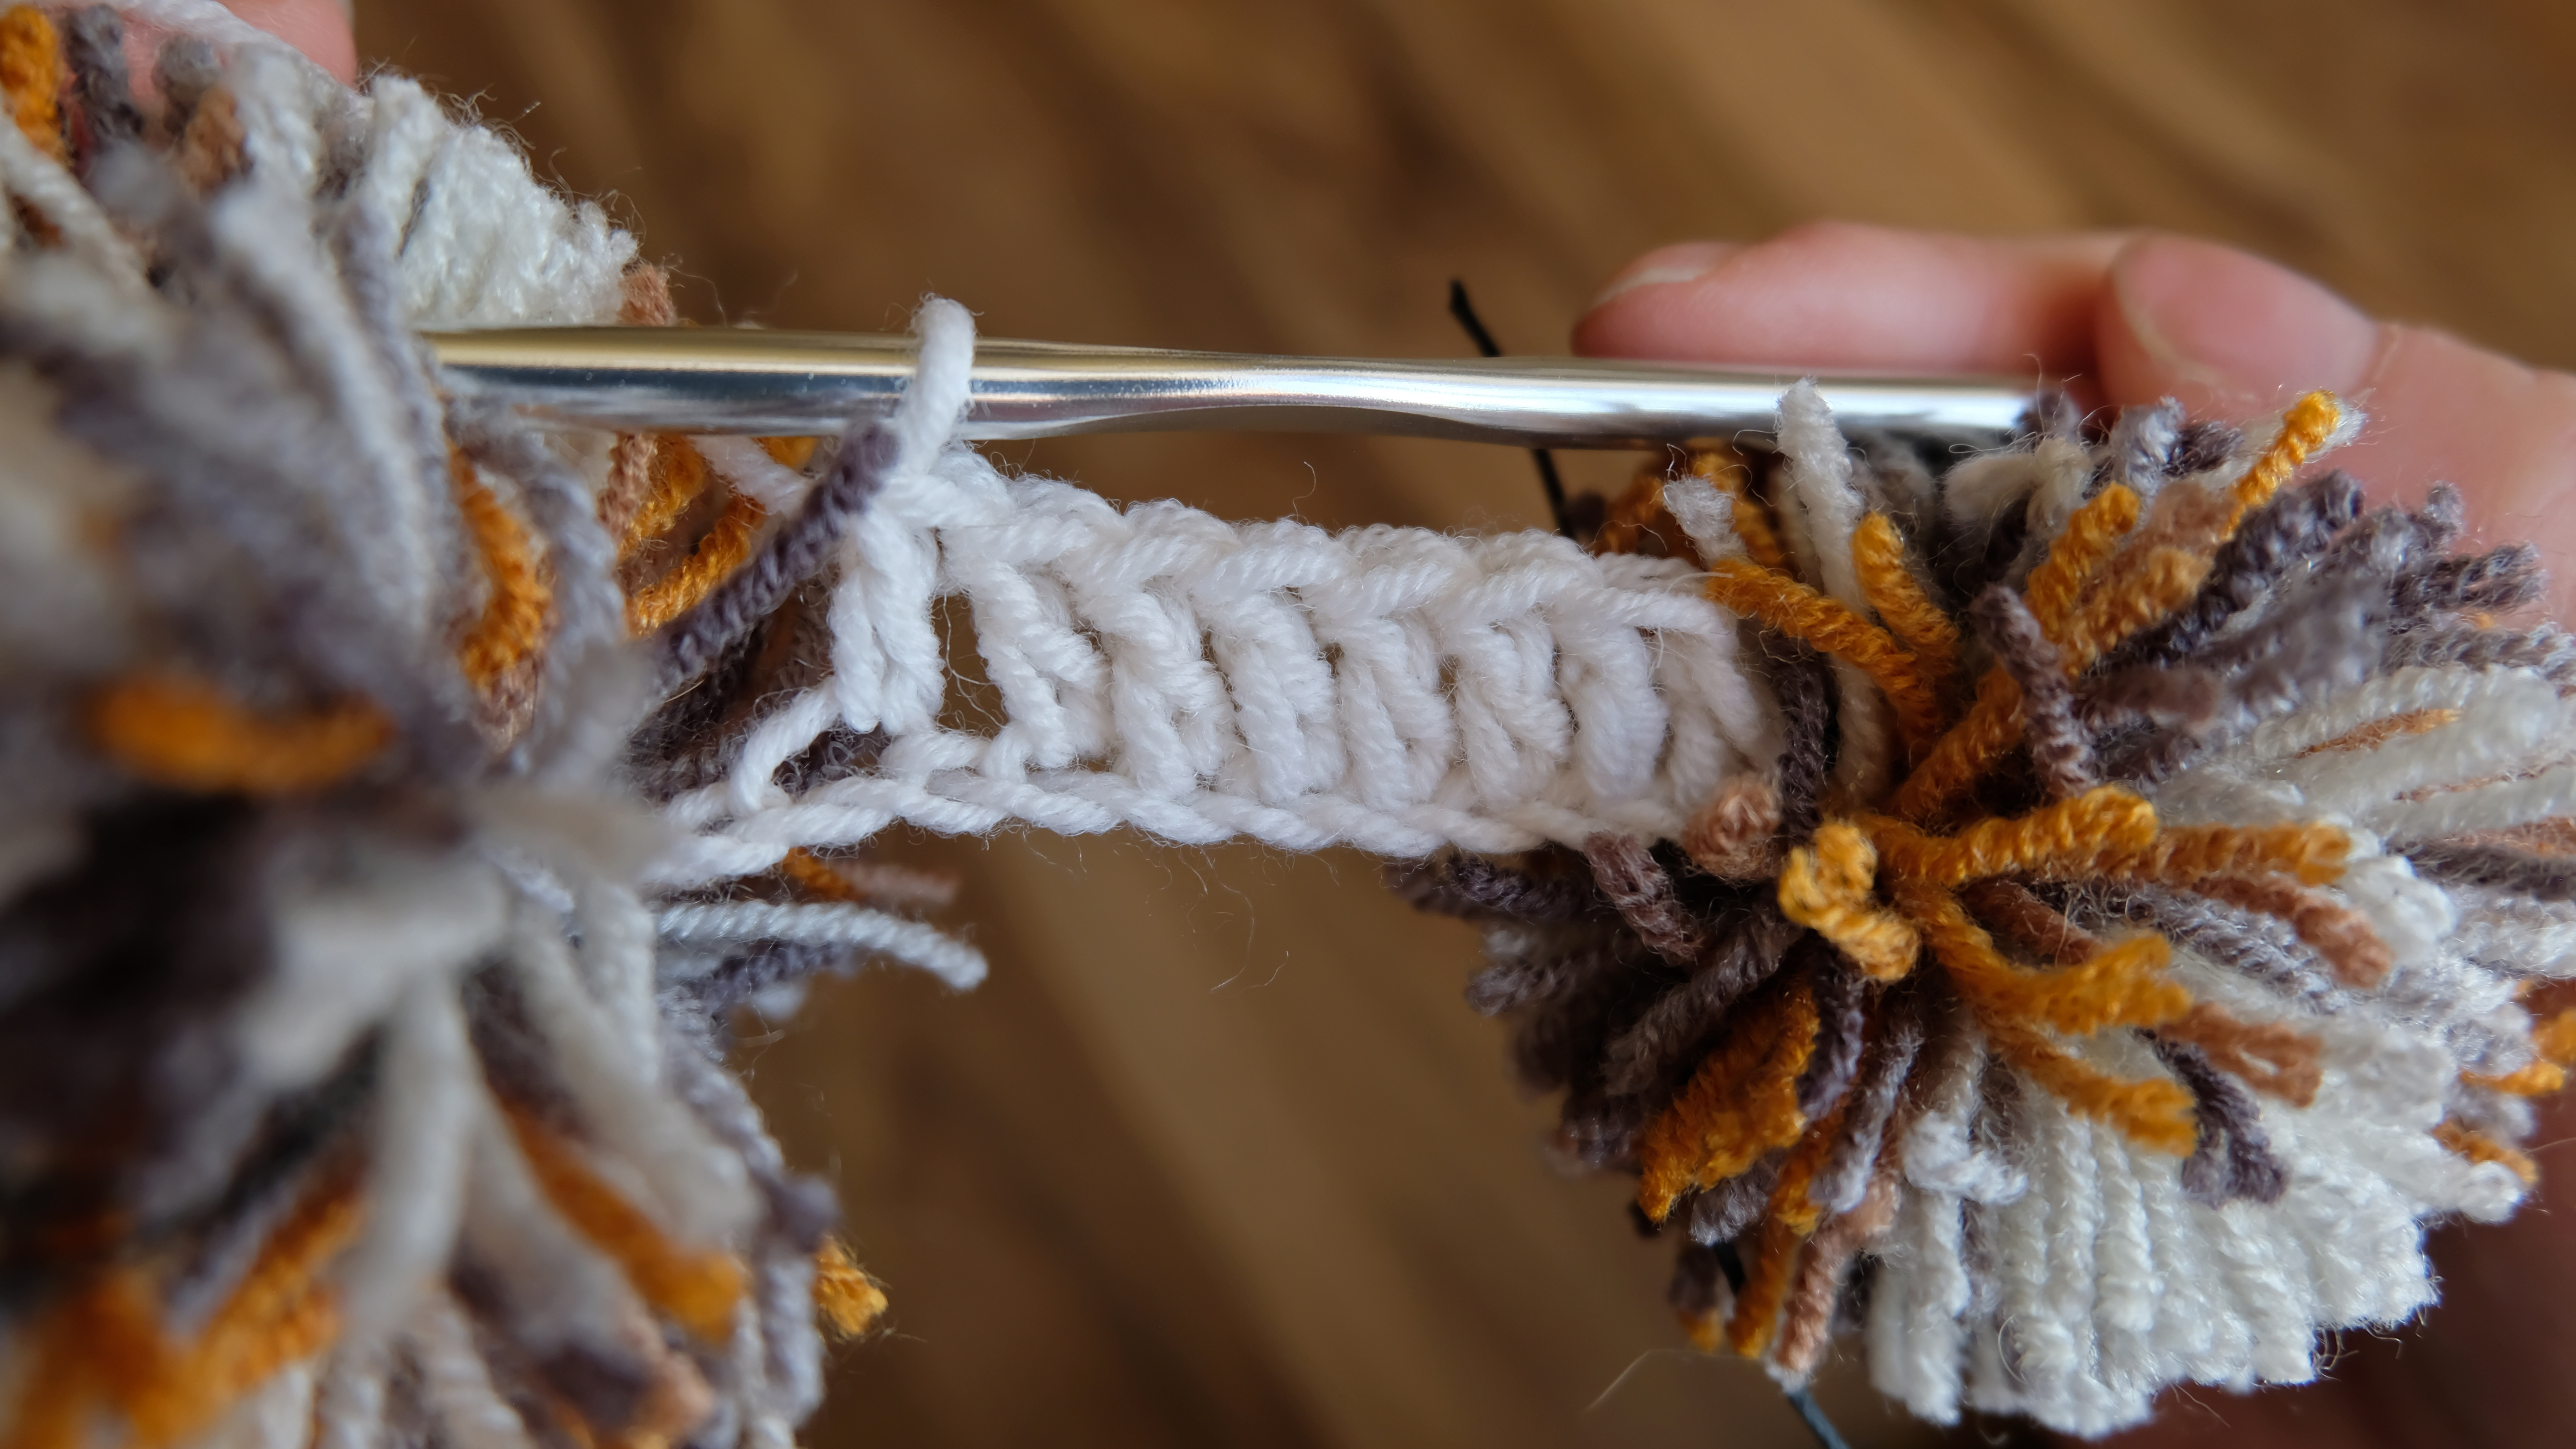 Picture of Crocheting. the Second and Third Rows